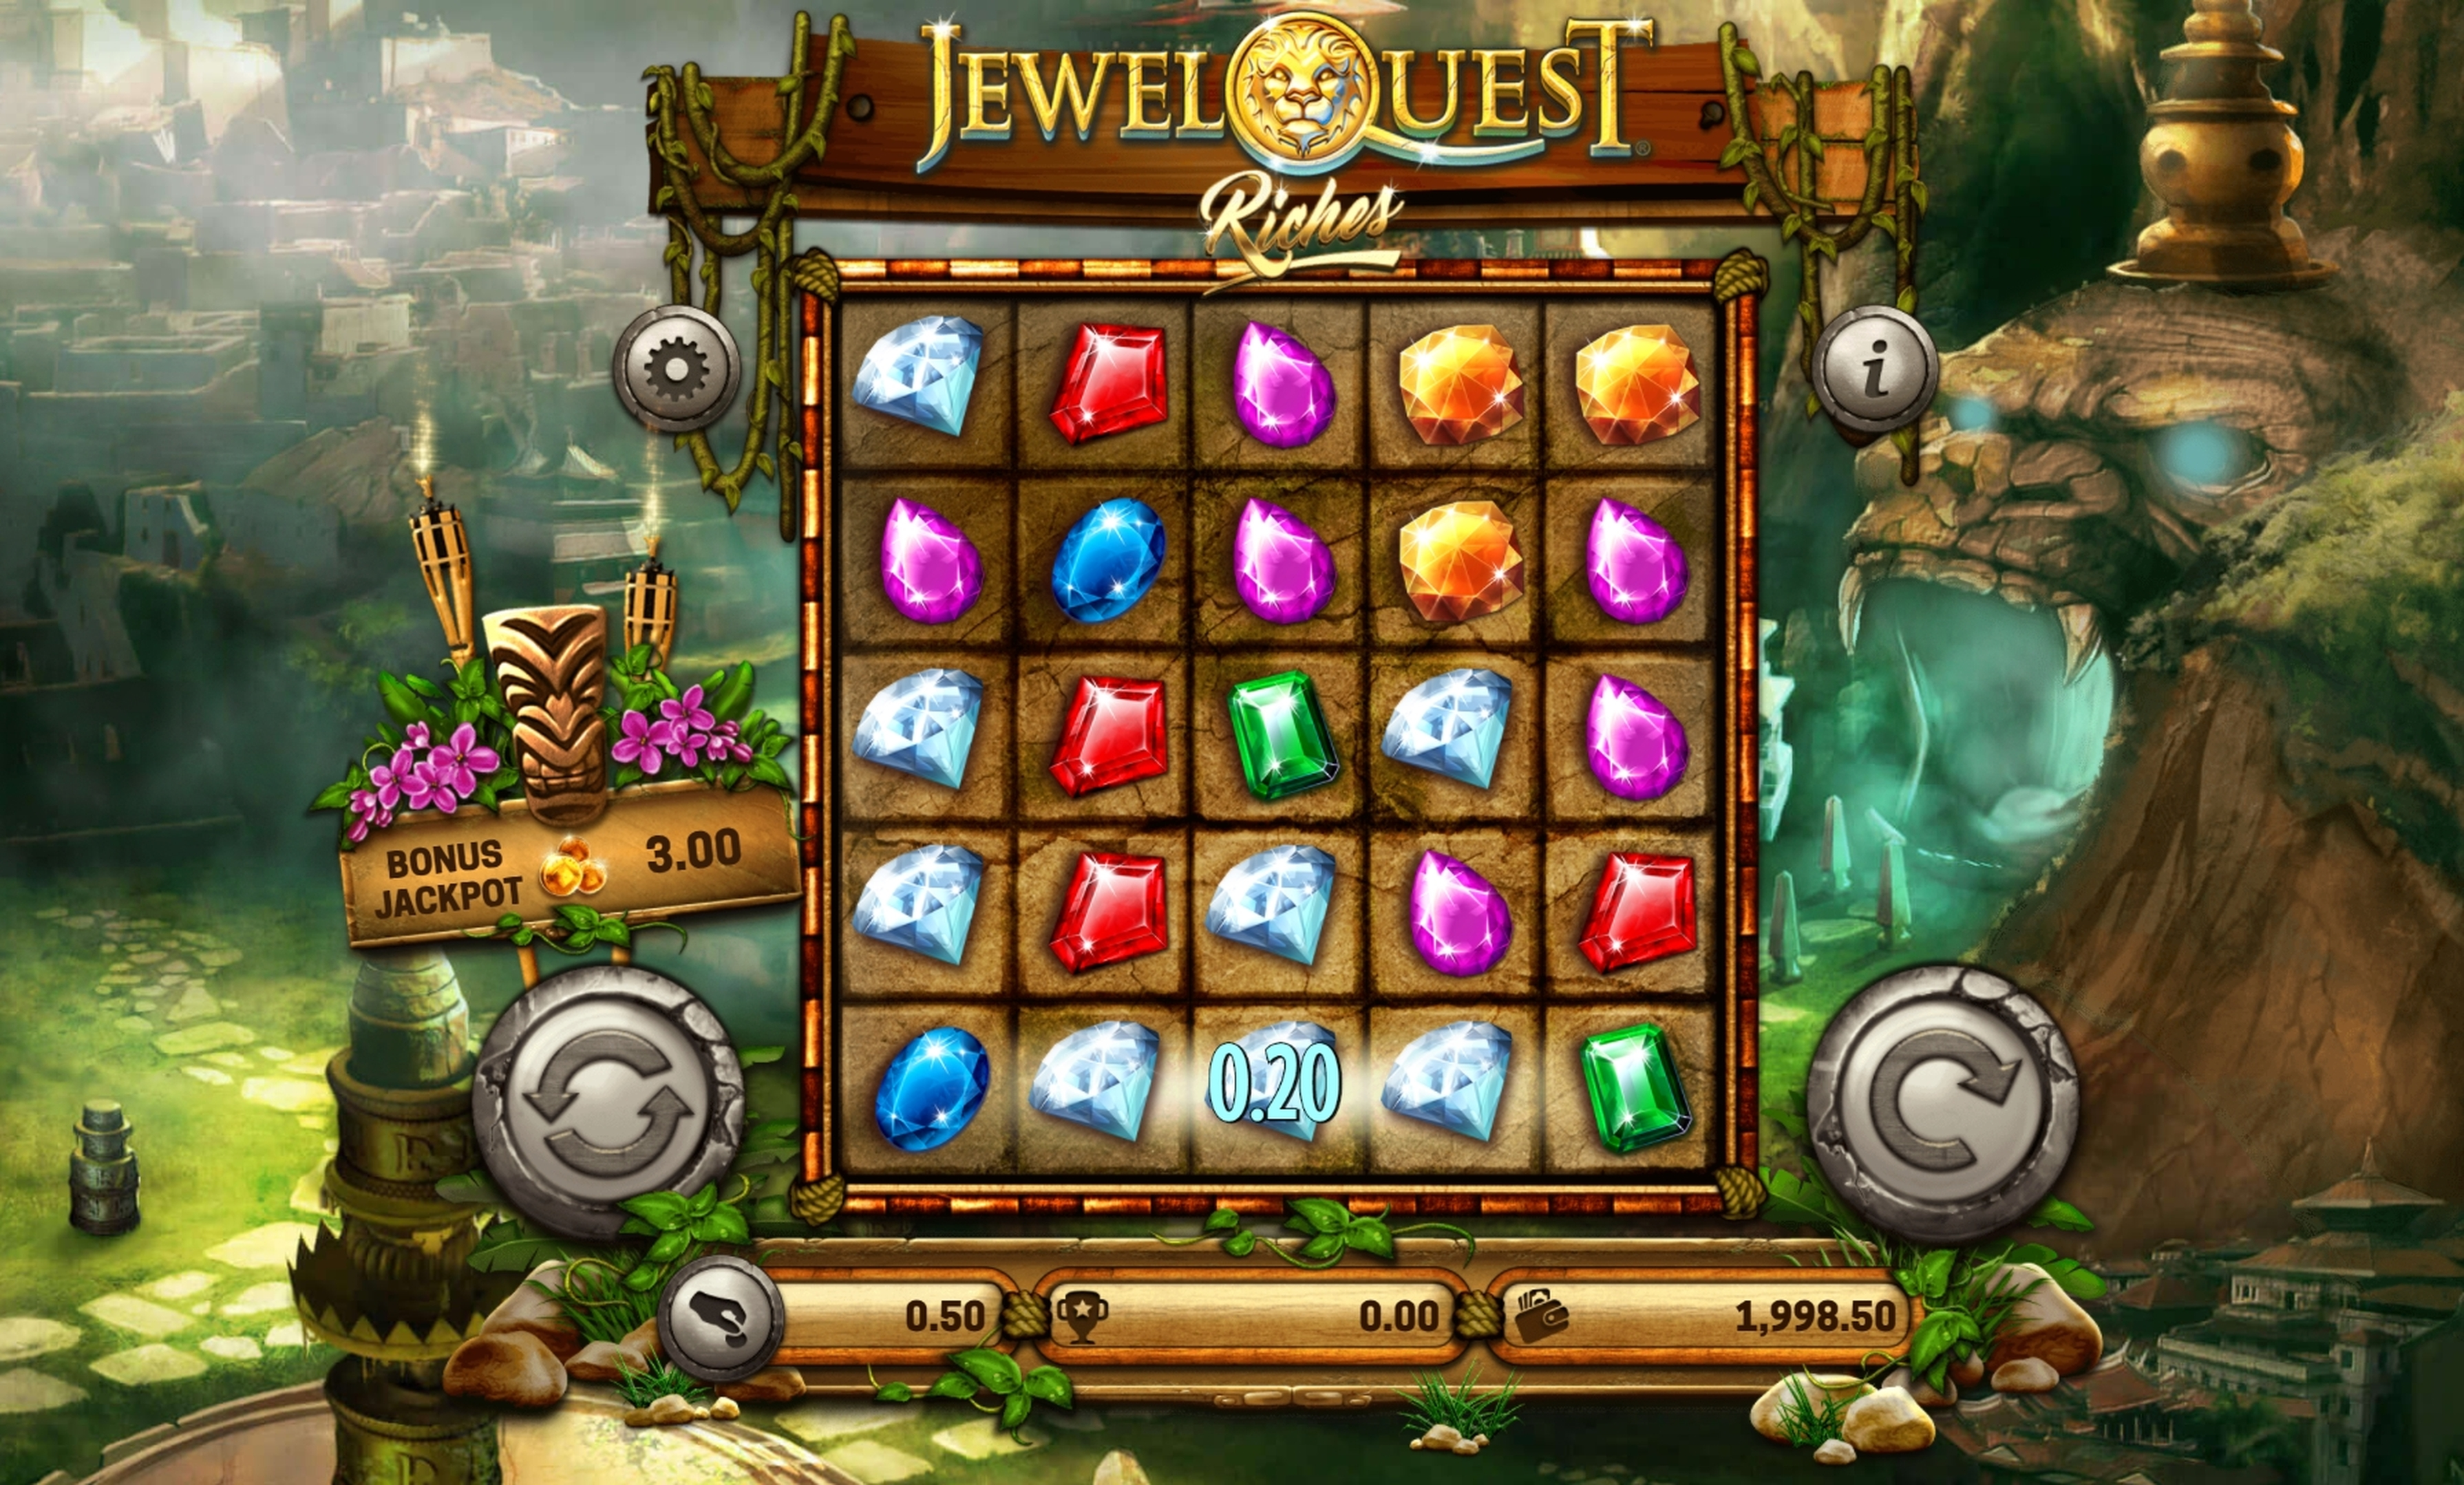 Win Money in Jewel Quest Riches Free Slot Game by Old Skool Studios